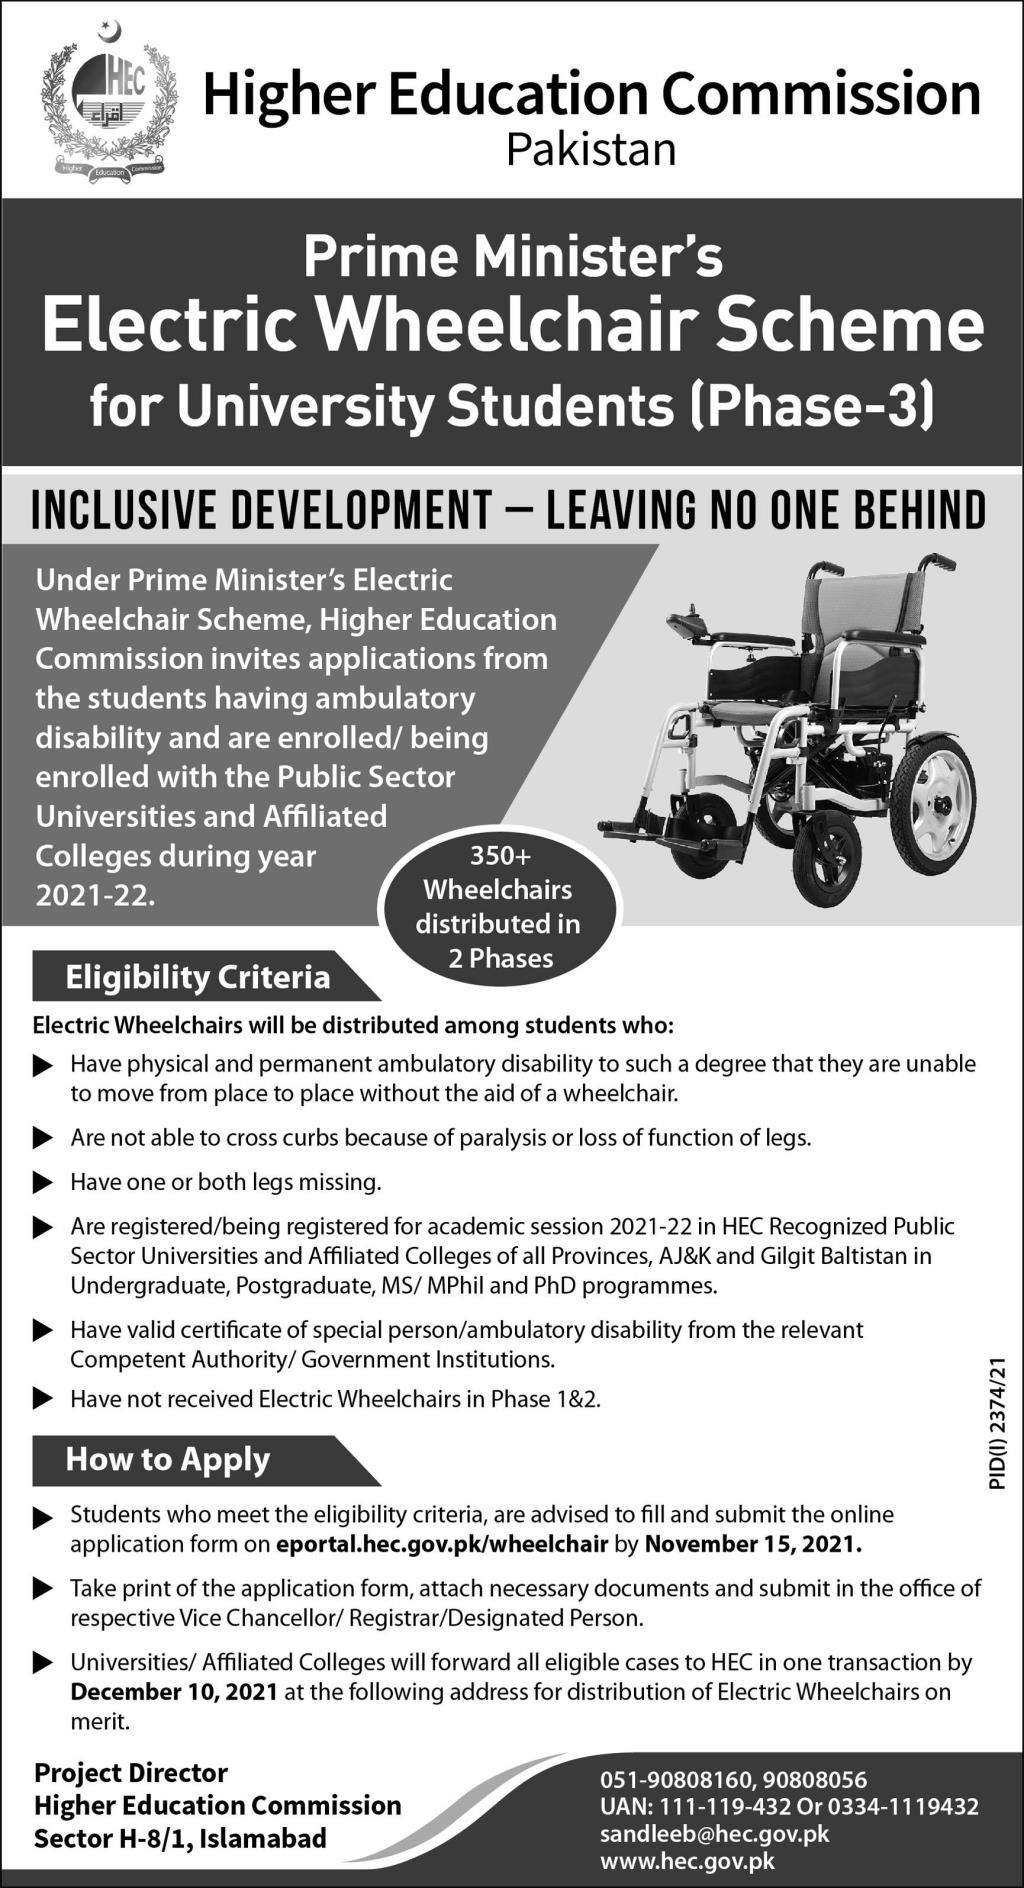 Prime Minister's Electric Wheelchair Scheme for University Students (Phase-3)